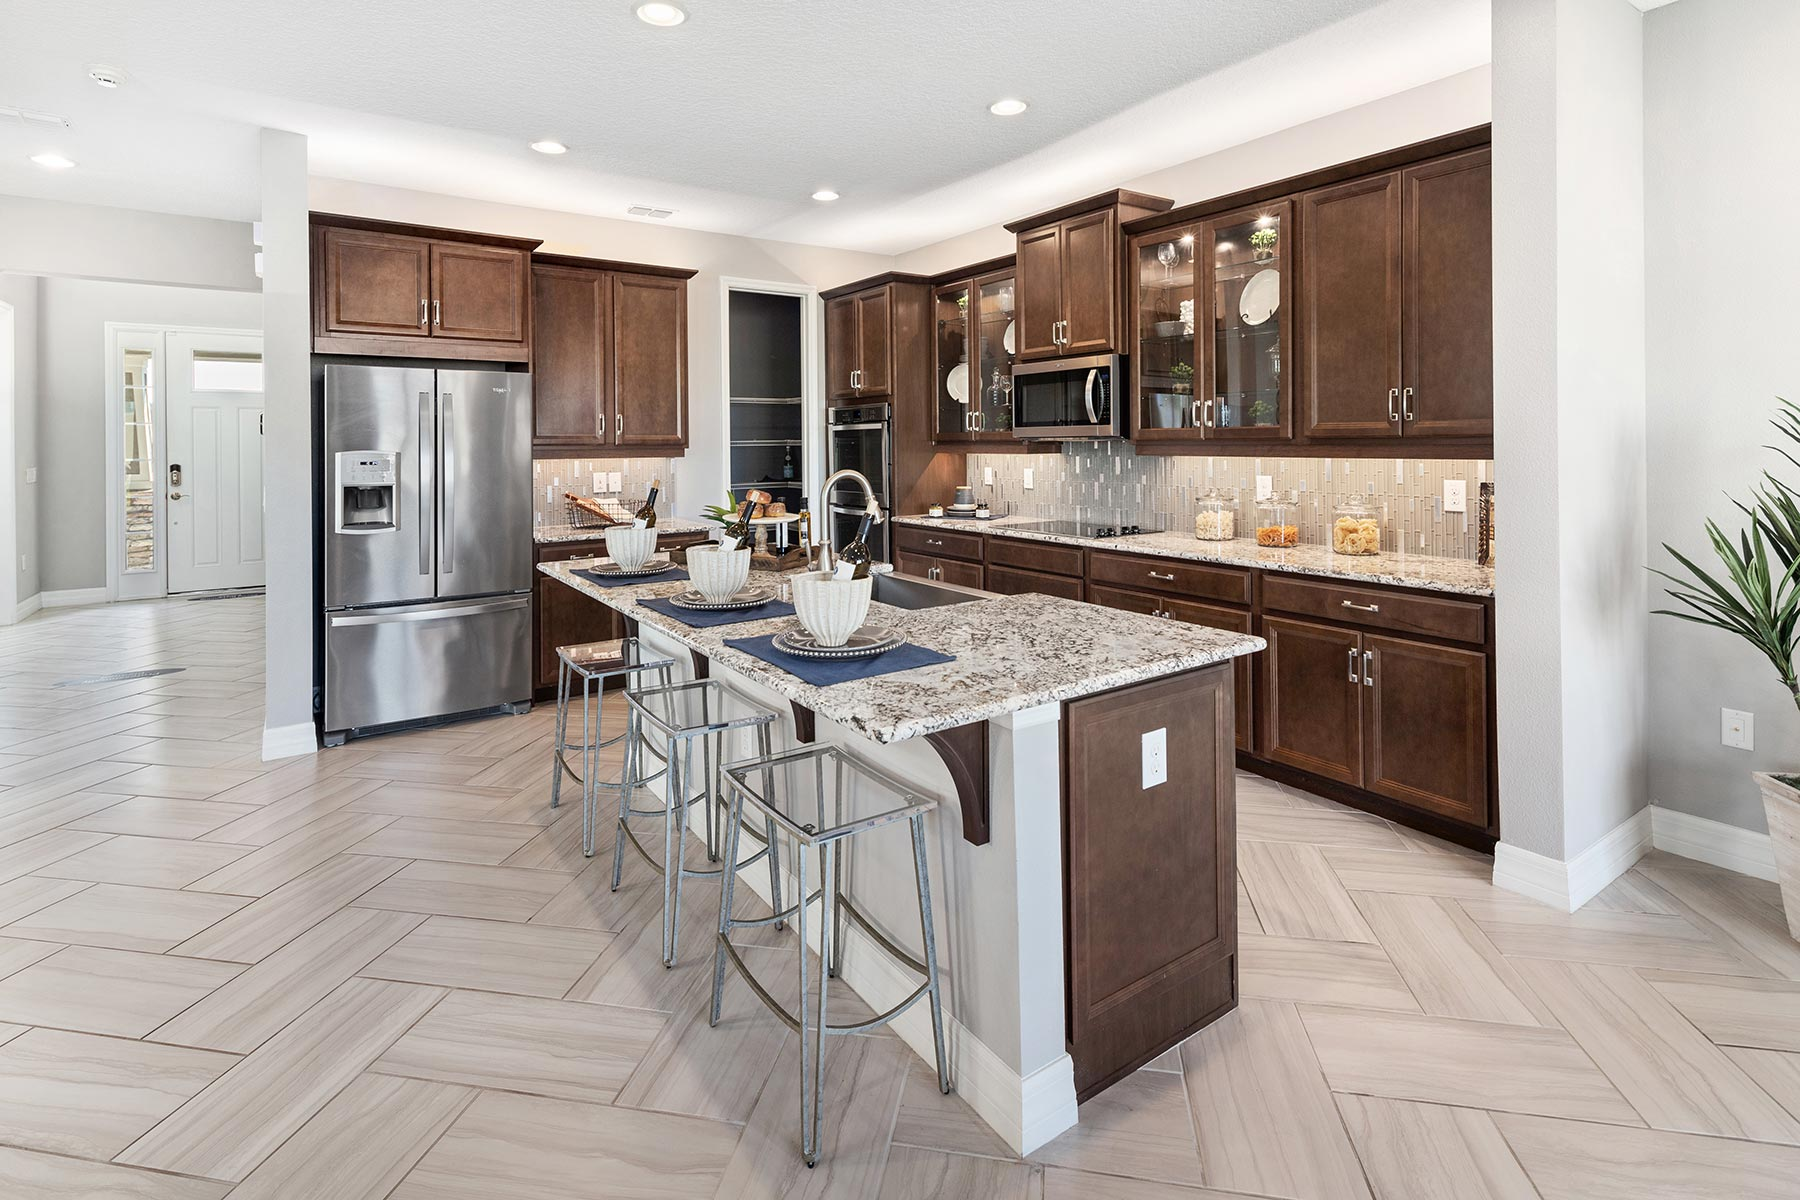 Kensington Plan Kitchen at Preserve at Crown Point in Ocoee Florida by Mattamy Homes